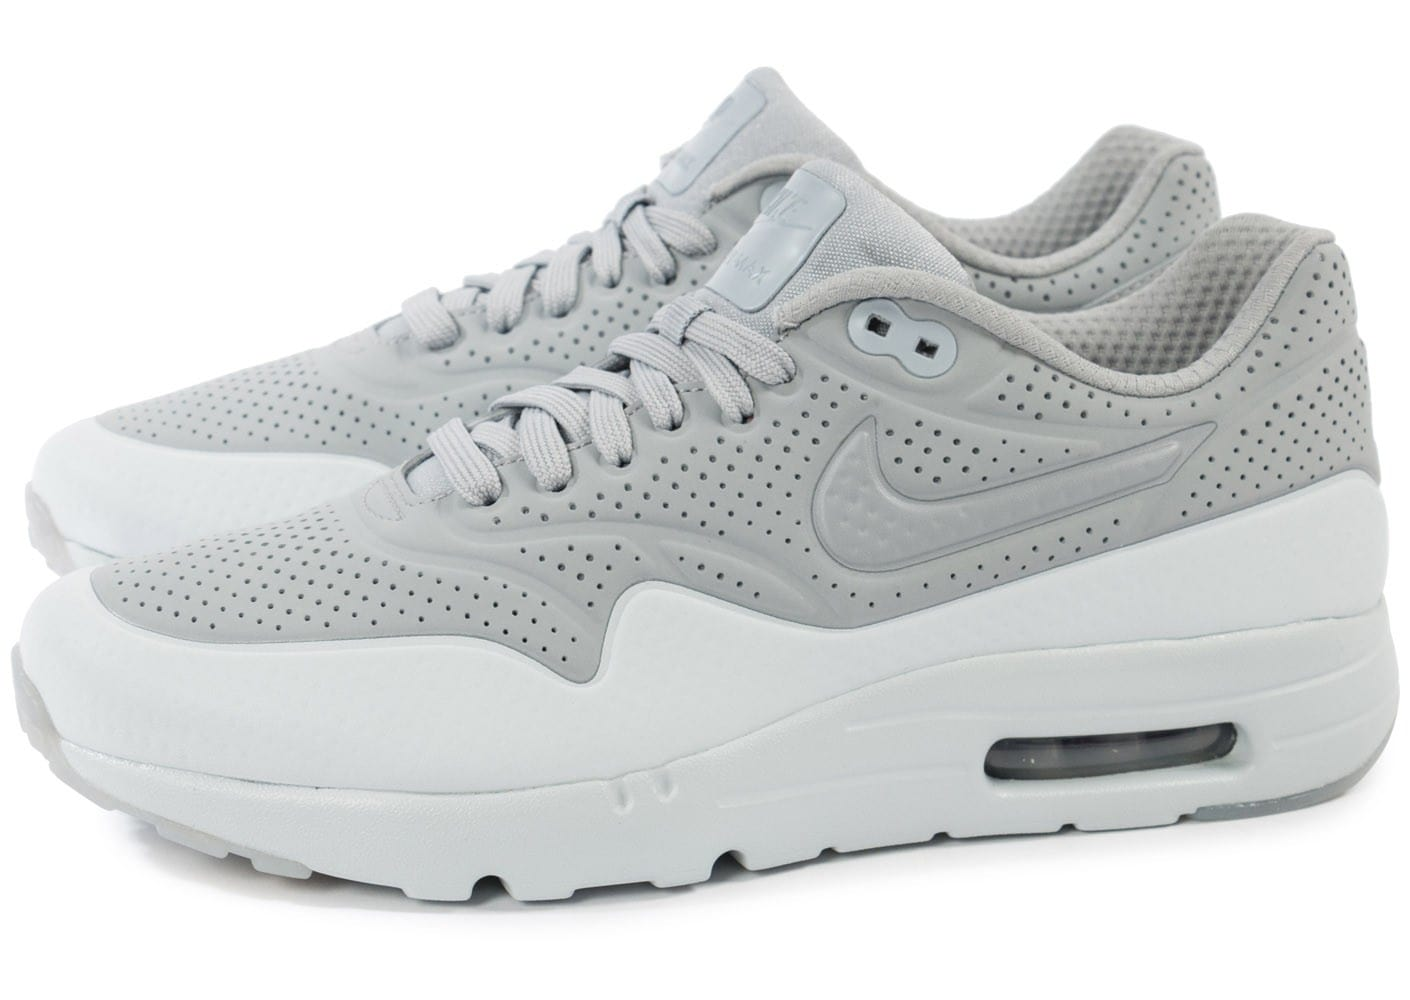 Nike Air Max 1 Ultra Moire Homme Officiel Atelier  [9875179]